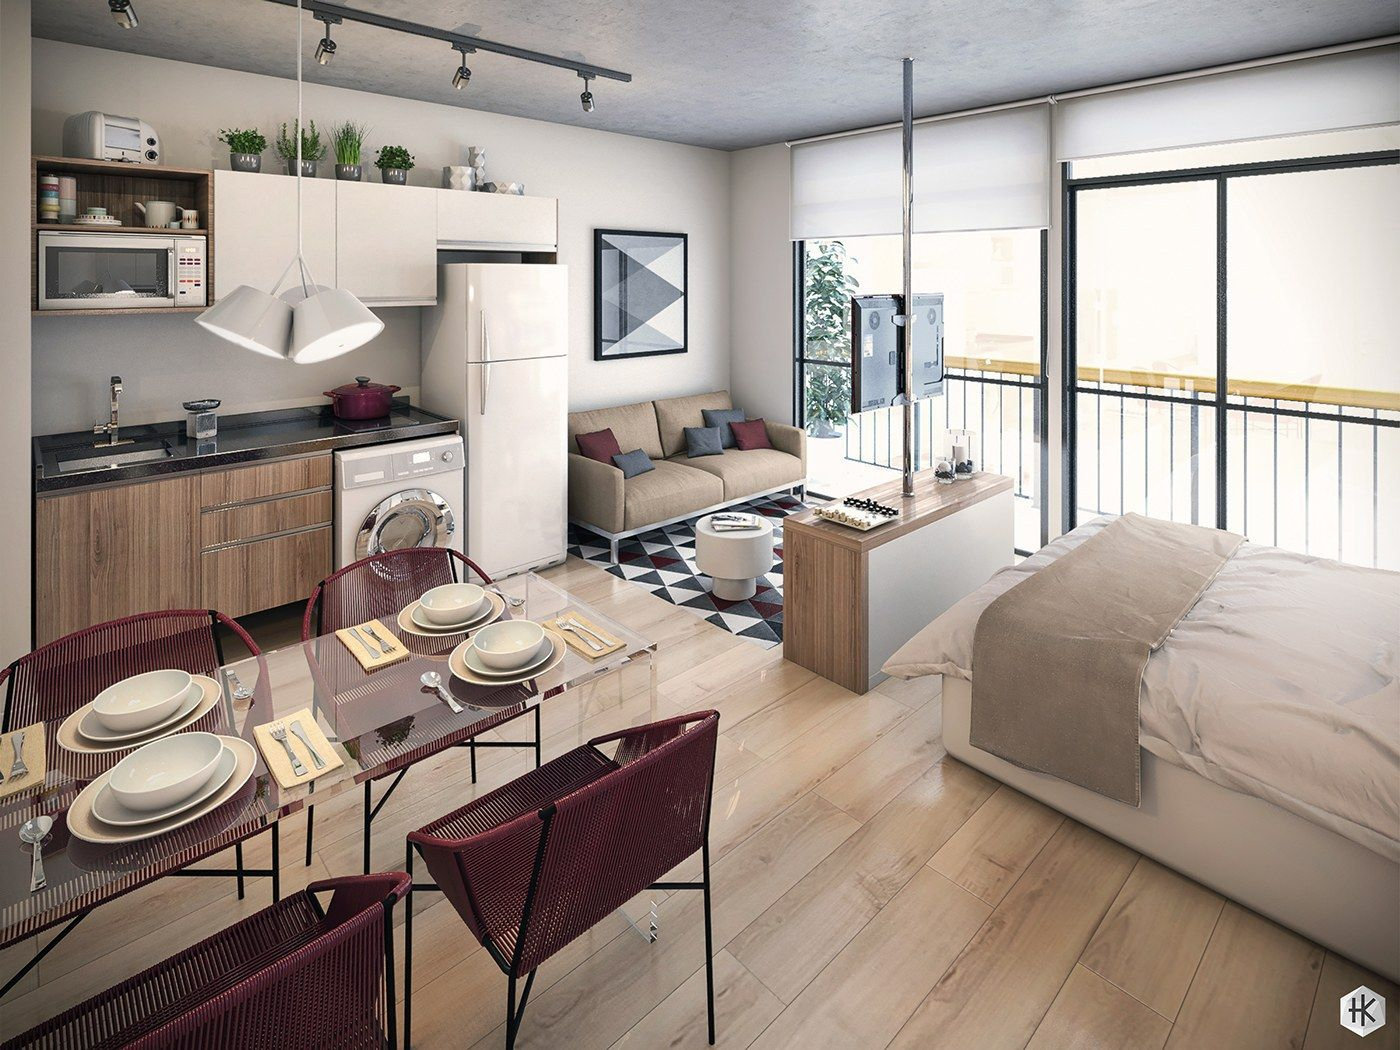 Best Ideas About Studio Apartments On They Design Small With Regard To How To De Small Apartment Interior Apartment Interior Design Studio Apartment Decorating